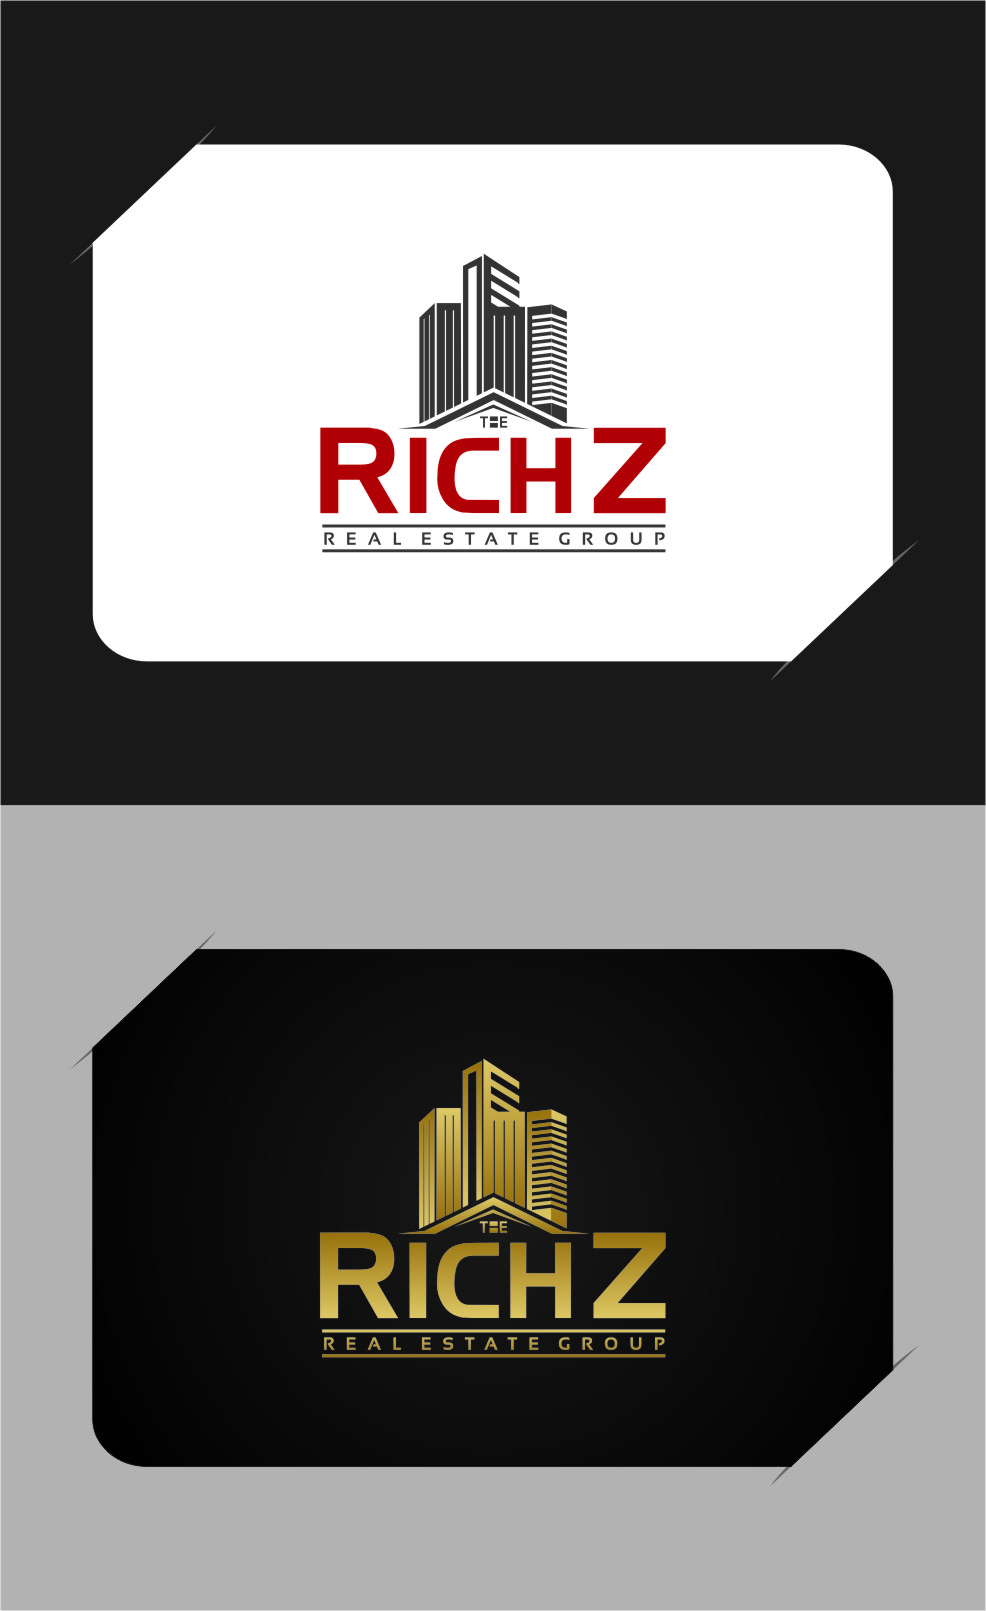 Logo Design by RasYa Muhammad Athaya - Entry No. 314 in the Logo Design Contest The Rich Z. Real Estate Group Logo Design.